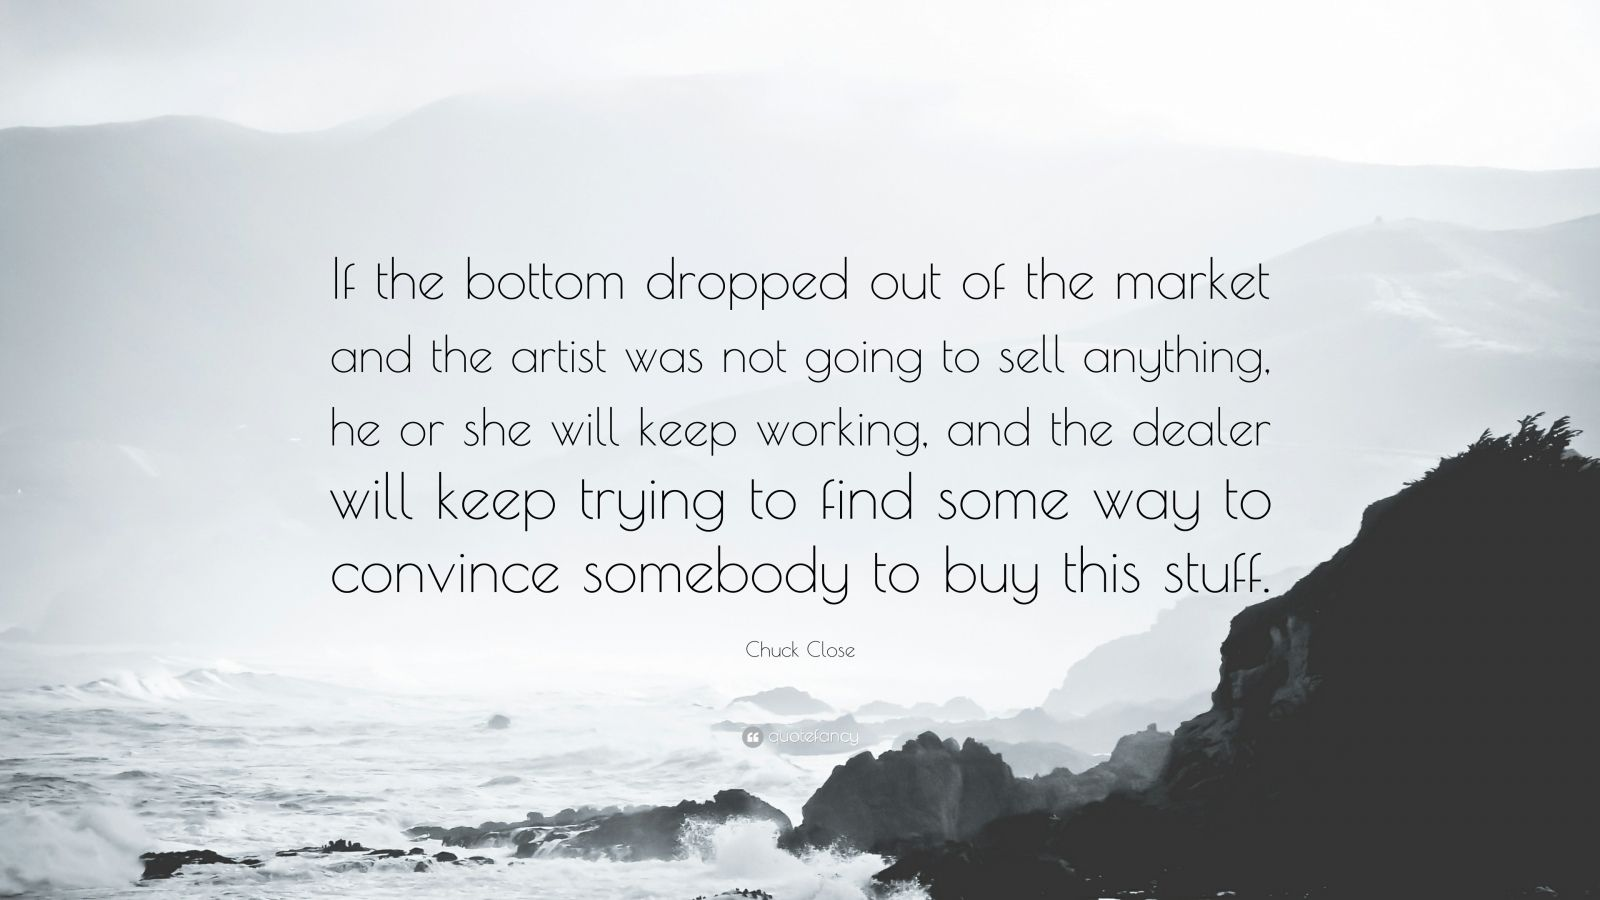 """Chuck Close Quote: """"If the bottom dropped out of the market and the artist was not going to sell anything, he or she will keep working, and the dealer will keep trying to find some way to convince somebody to buy this stuff."""""""